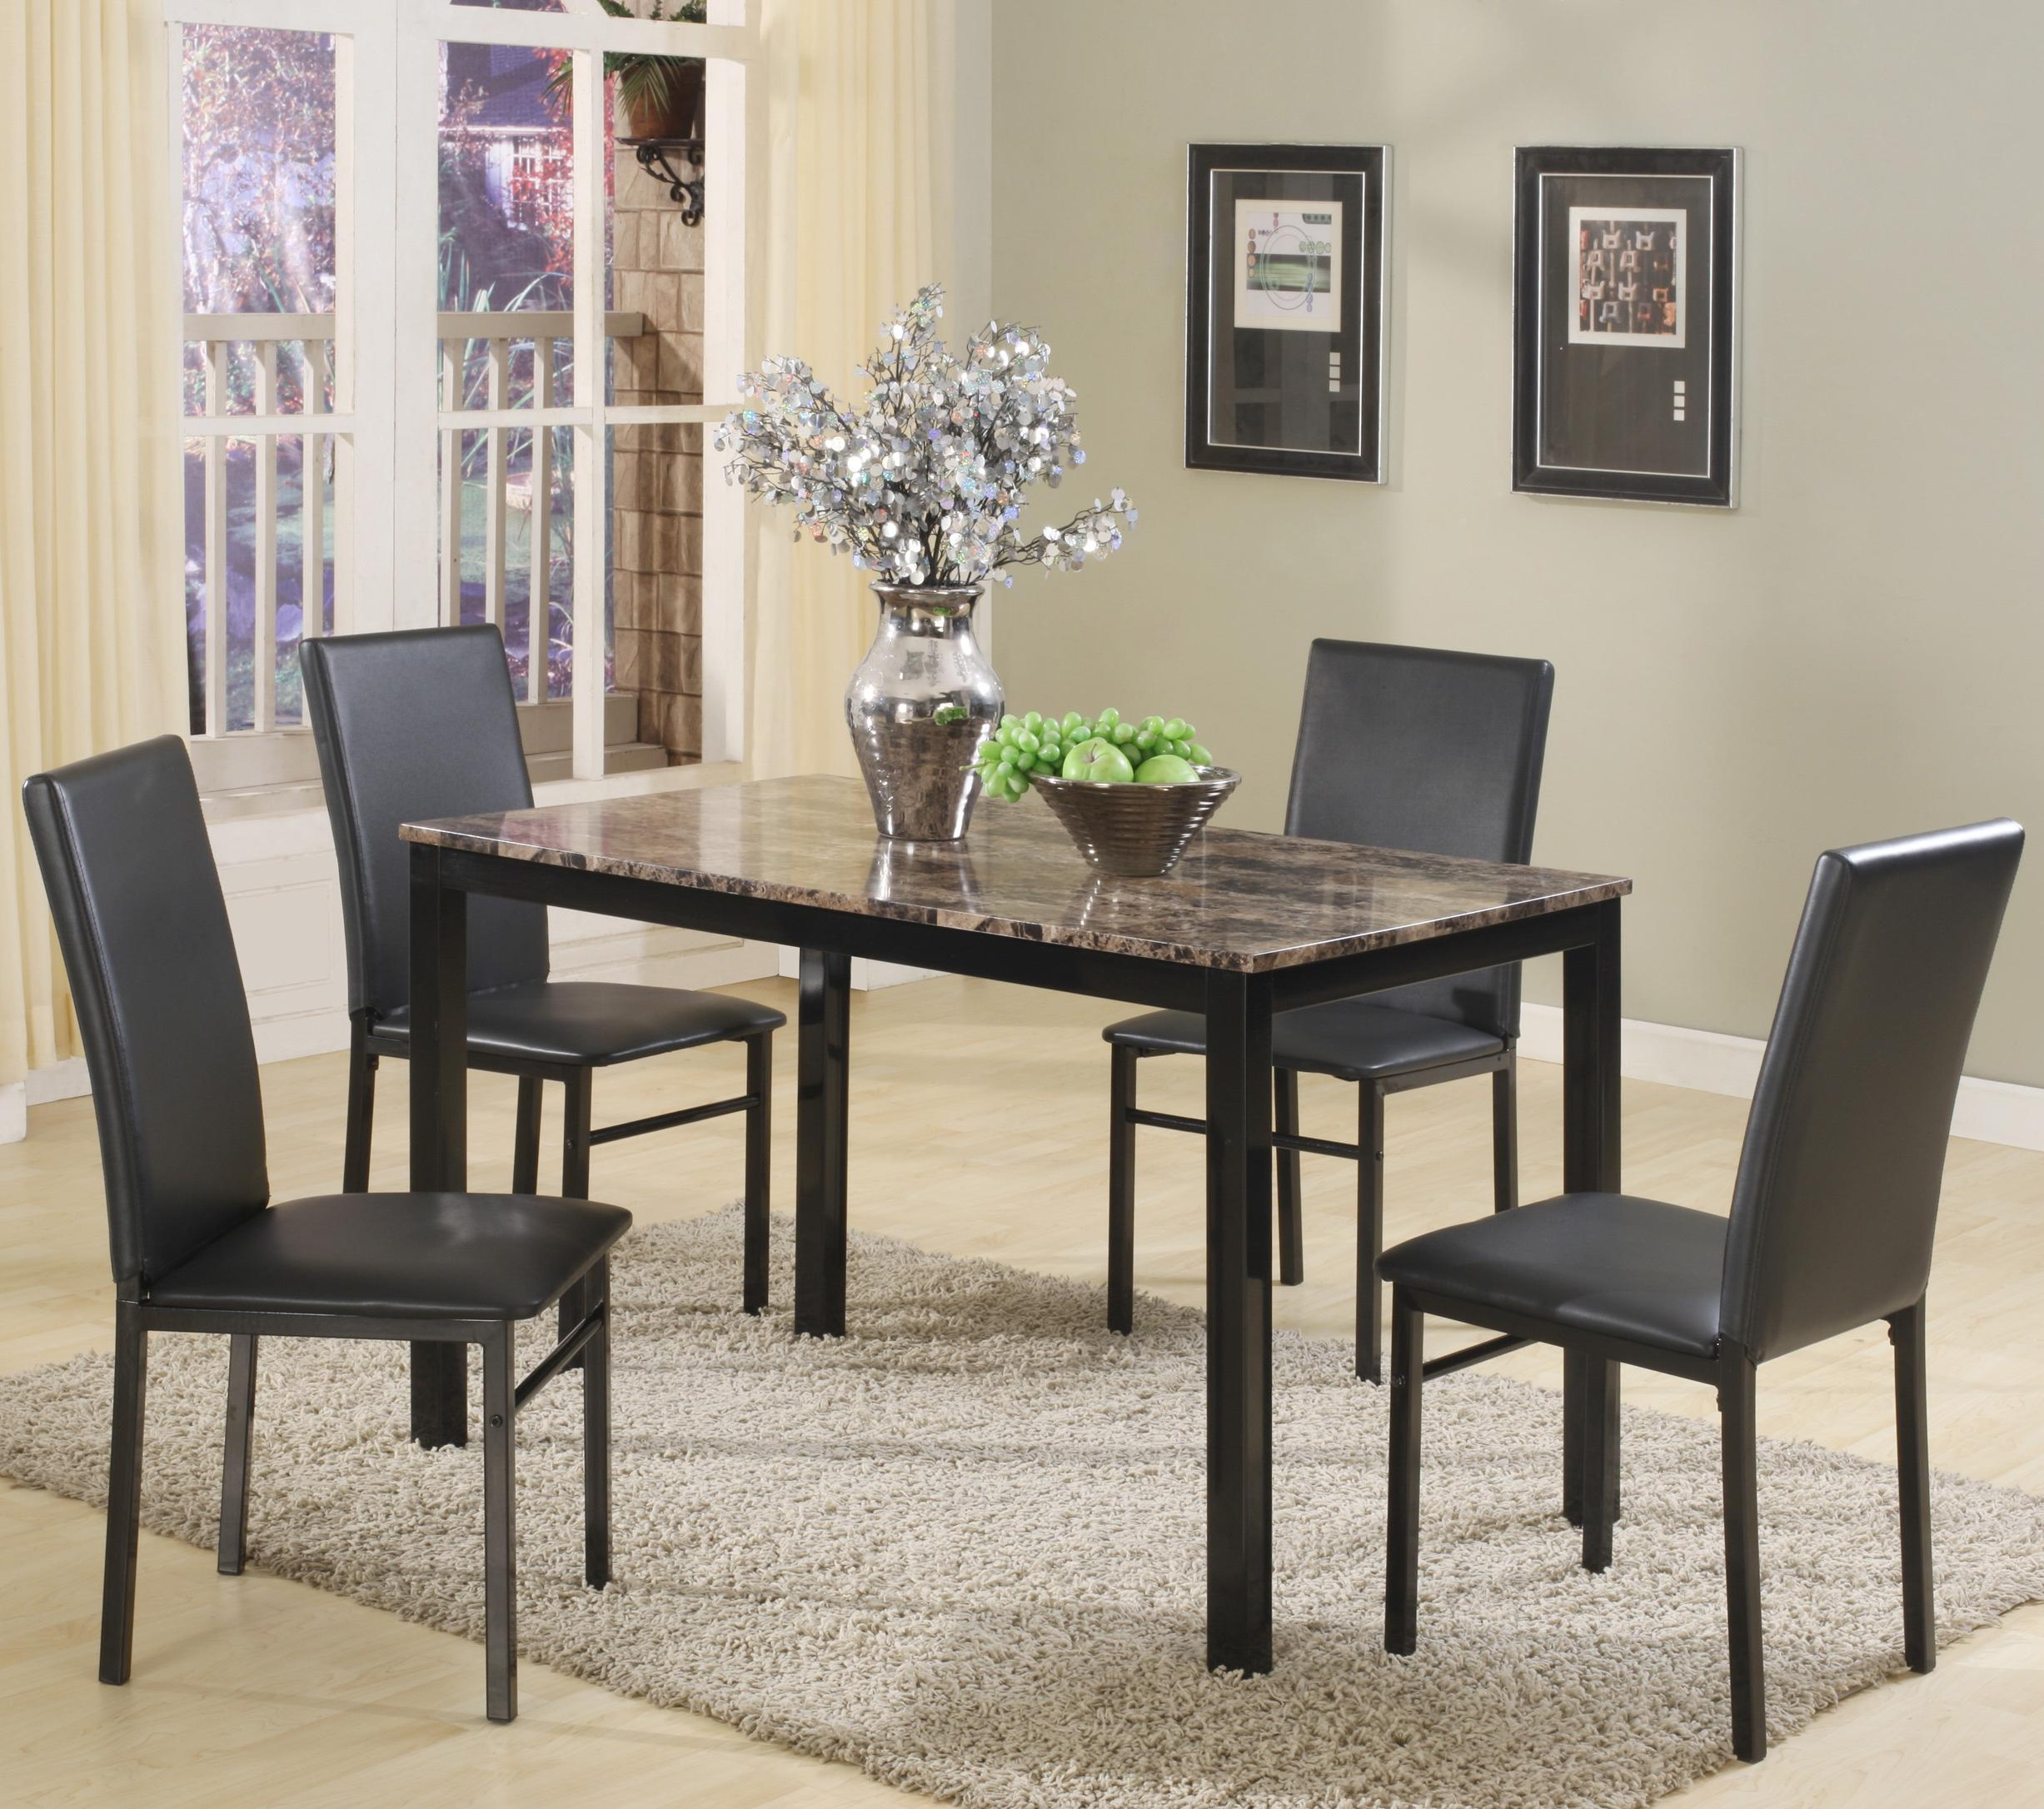 Aiden 5 Piece Dining Set by Crown Mark at Northeast Factory Direct